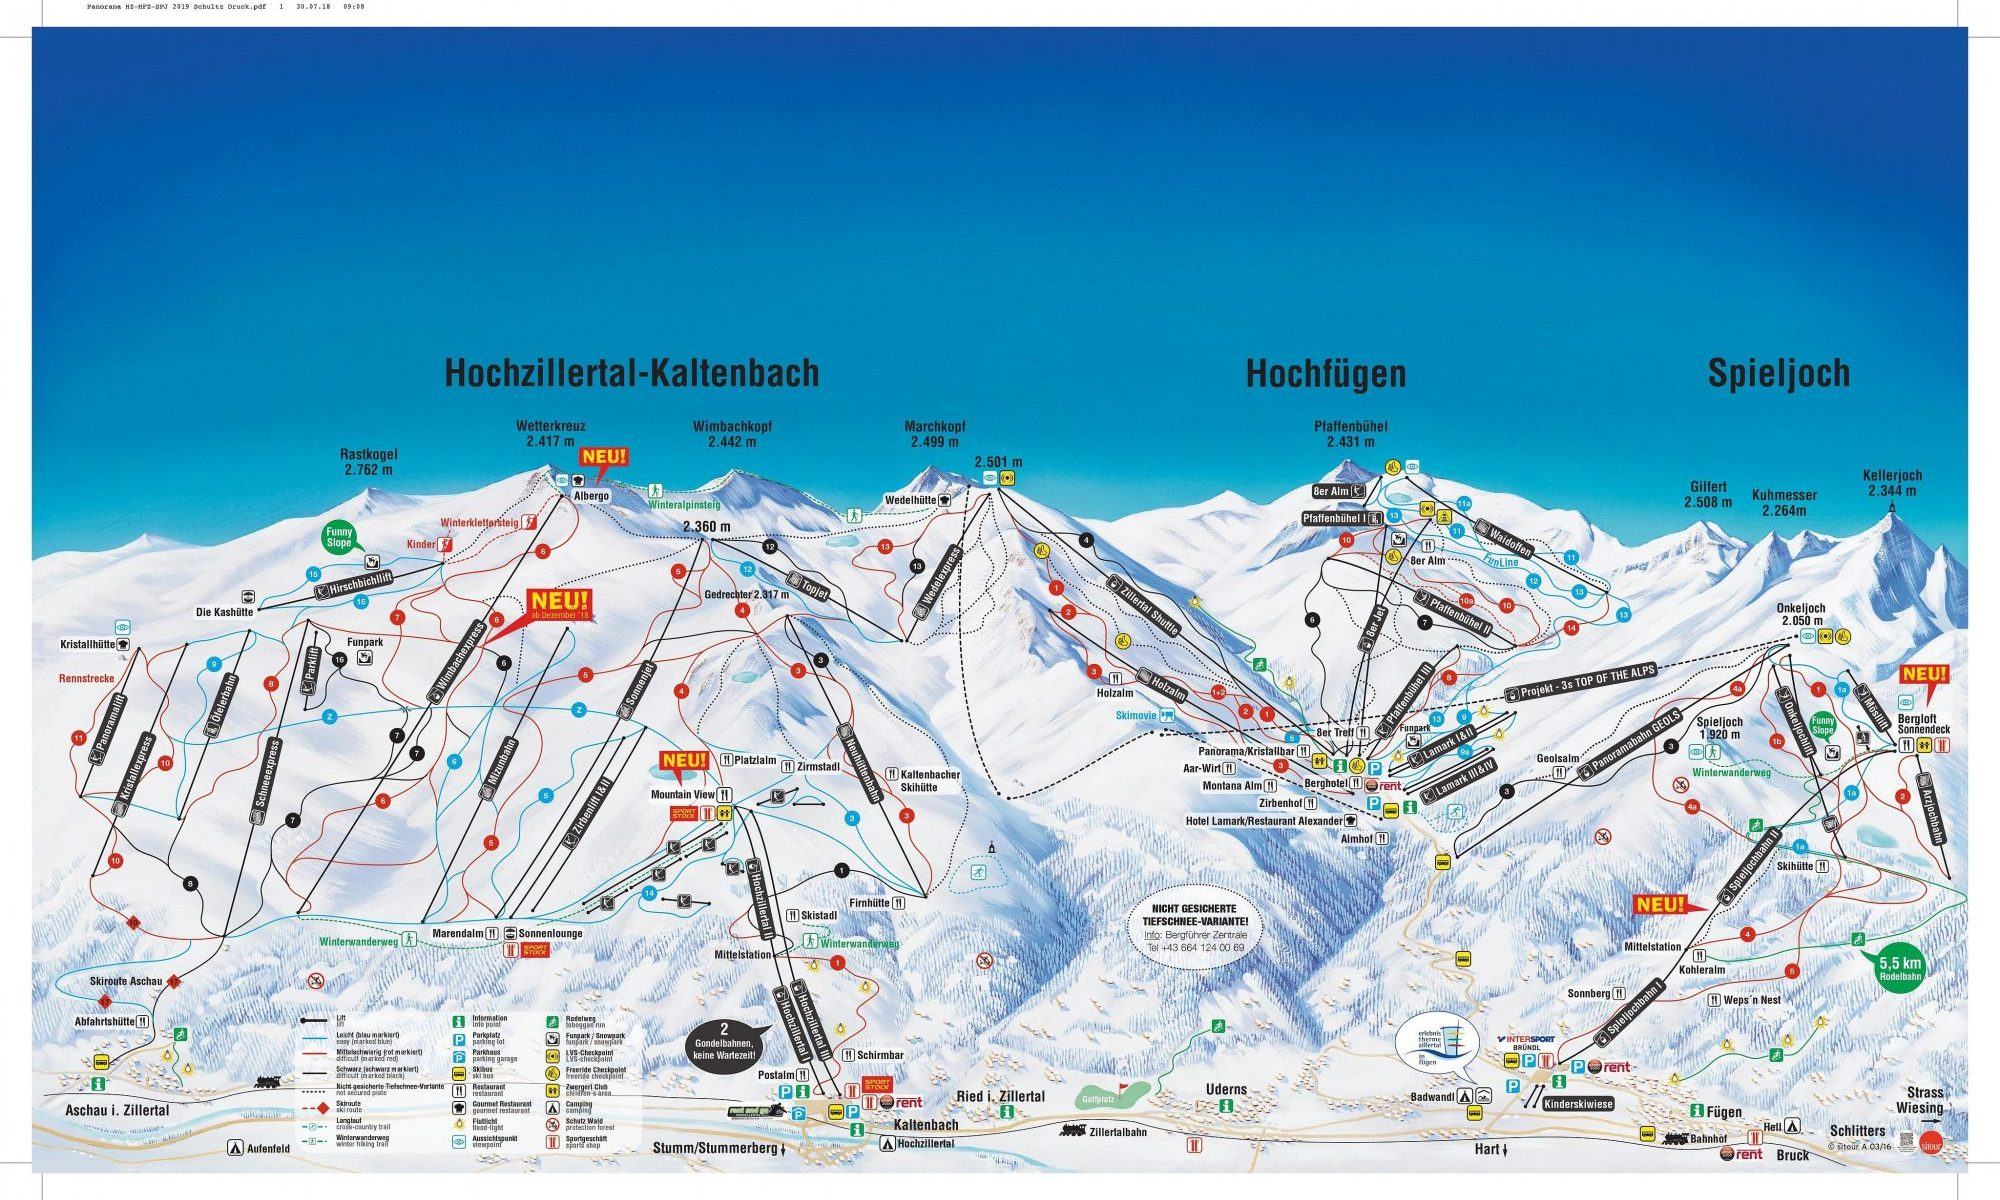 Hochzillertal ski map. A Gondola Accident happened in Hochzillertal today.